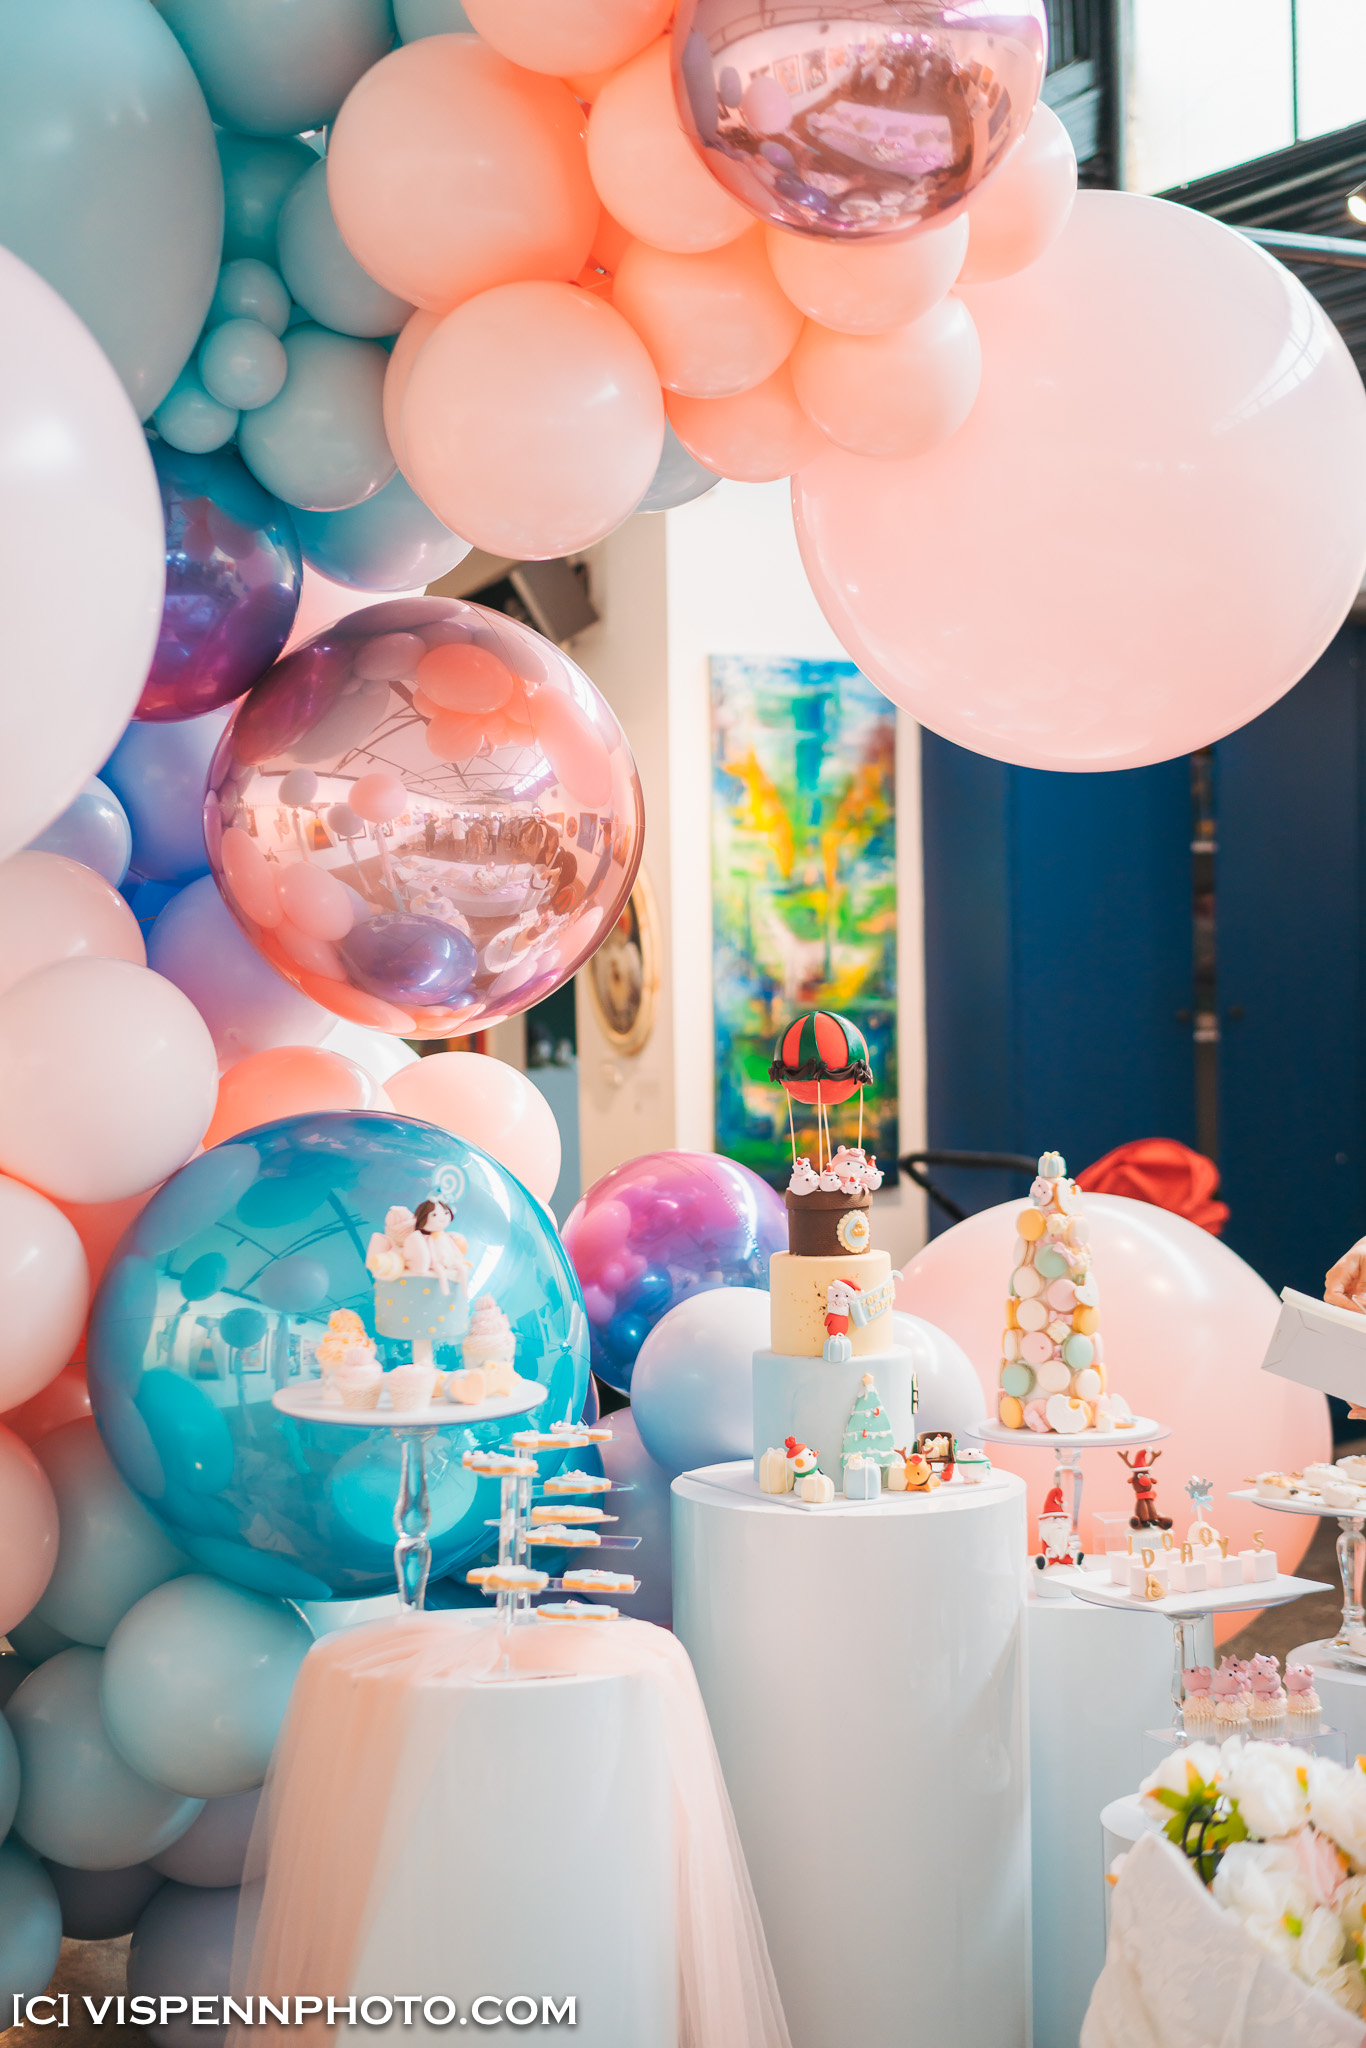 Melbourne Baby Family Birthday Party Photographer 墨尔本 百日宴 满月宴 周岁宴 摄影 VISPENN 100 Days 0123 Sony VISPENN